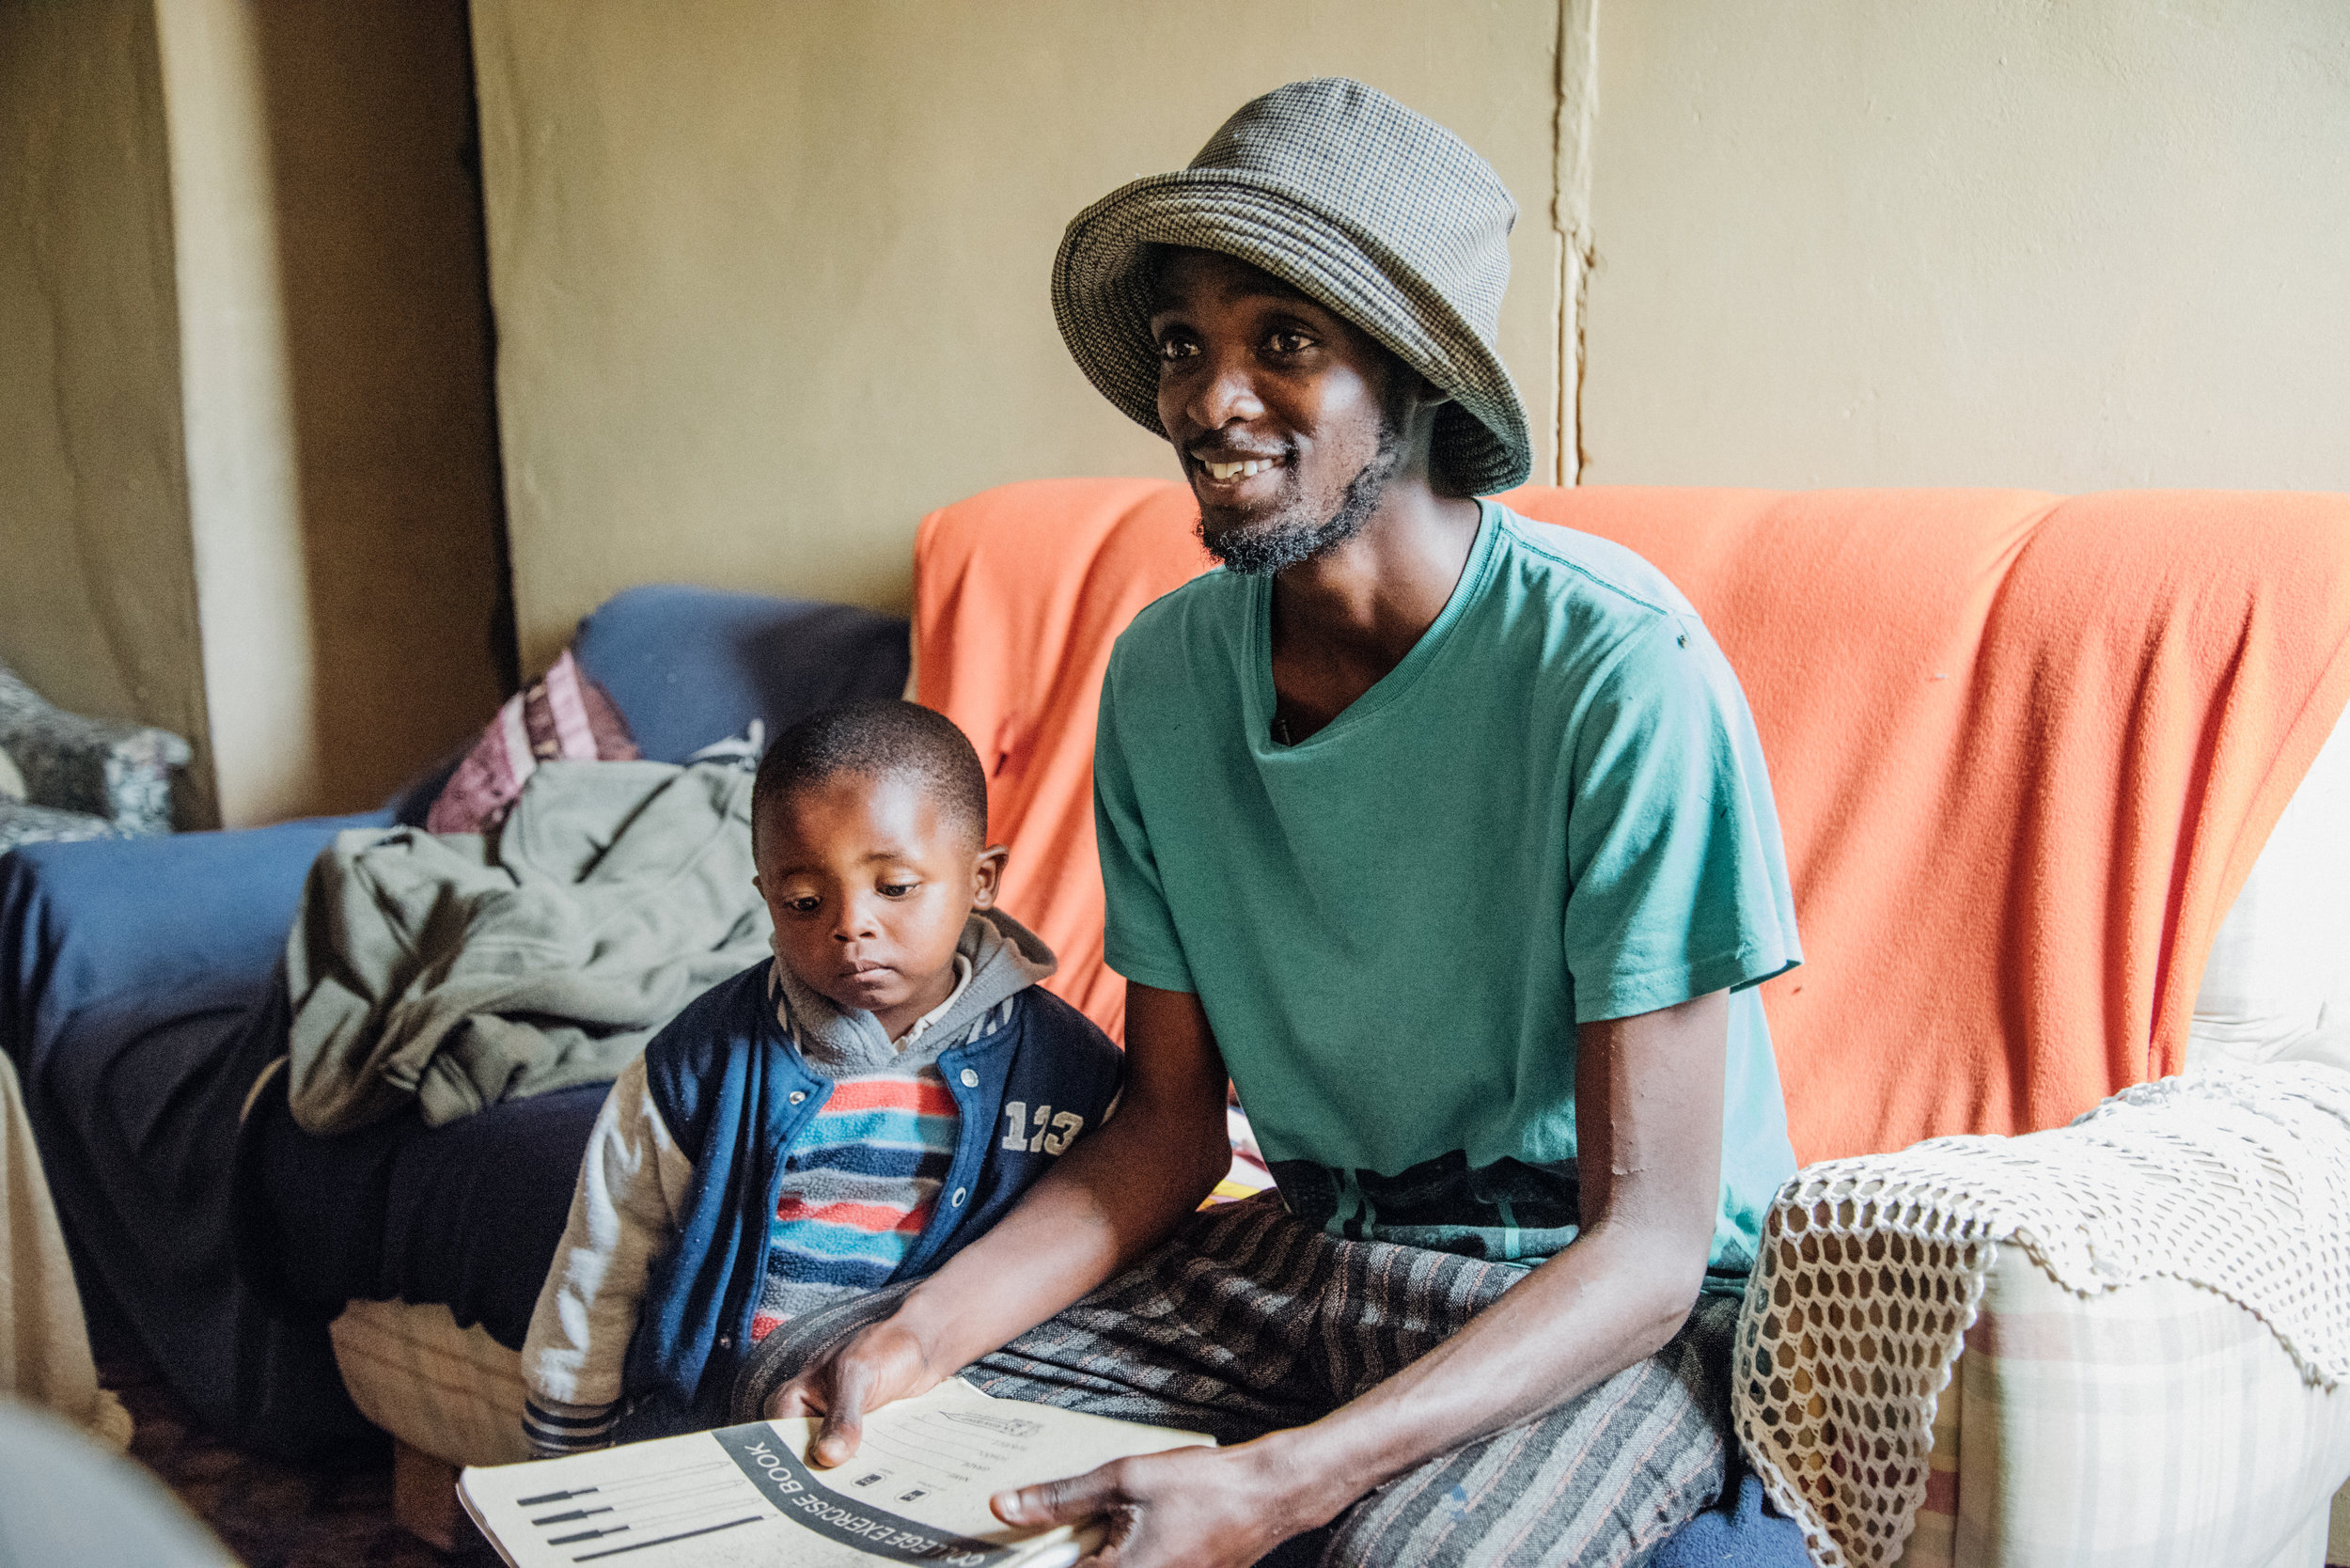 Vumazonke explaining his artwork with his son at his side.